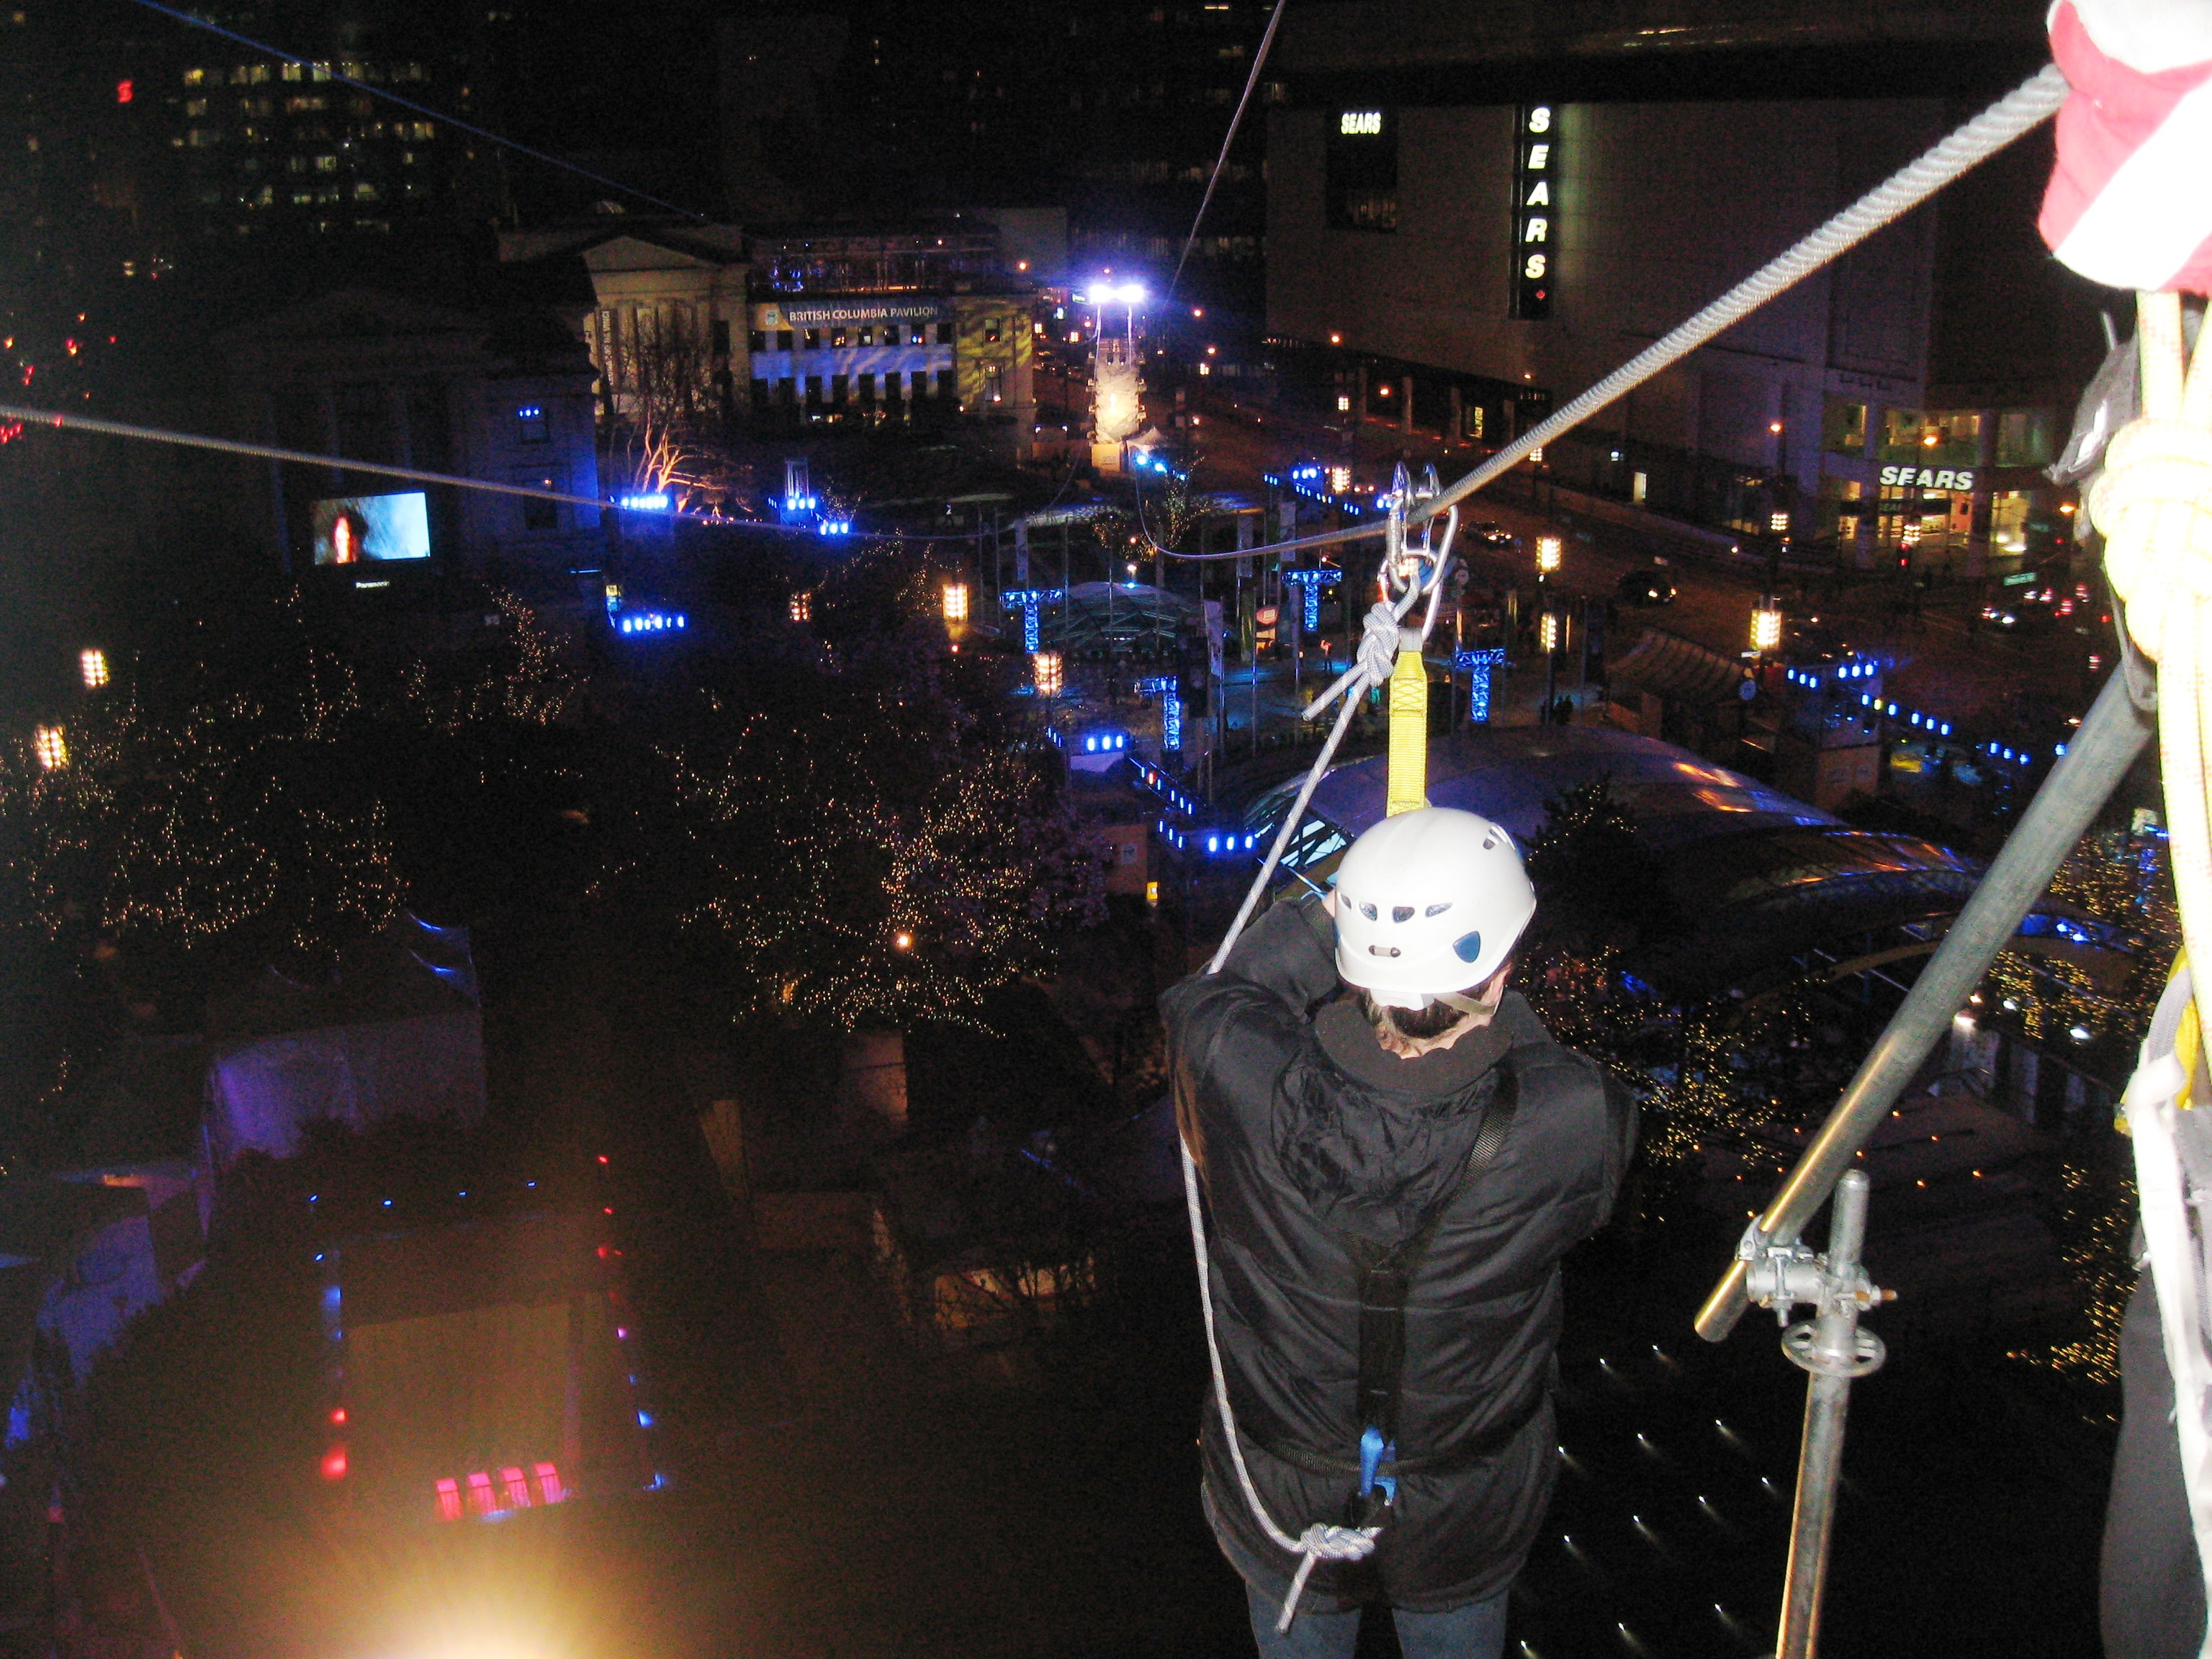 Shawn ziplining over Vancouver